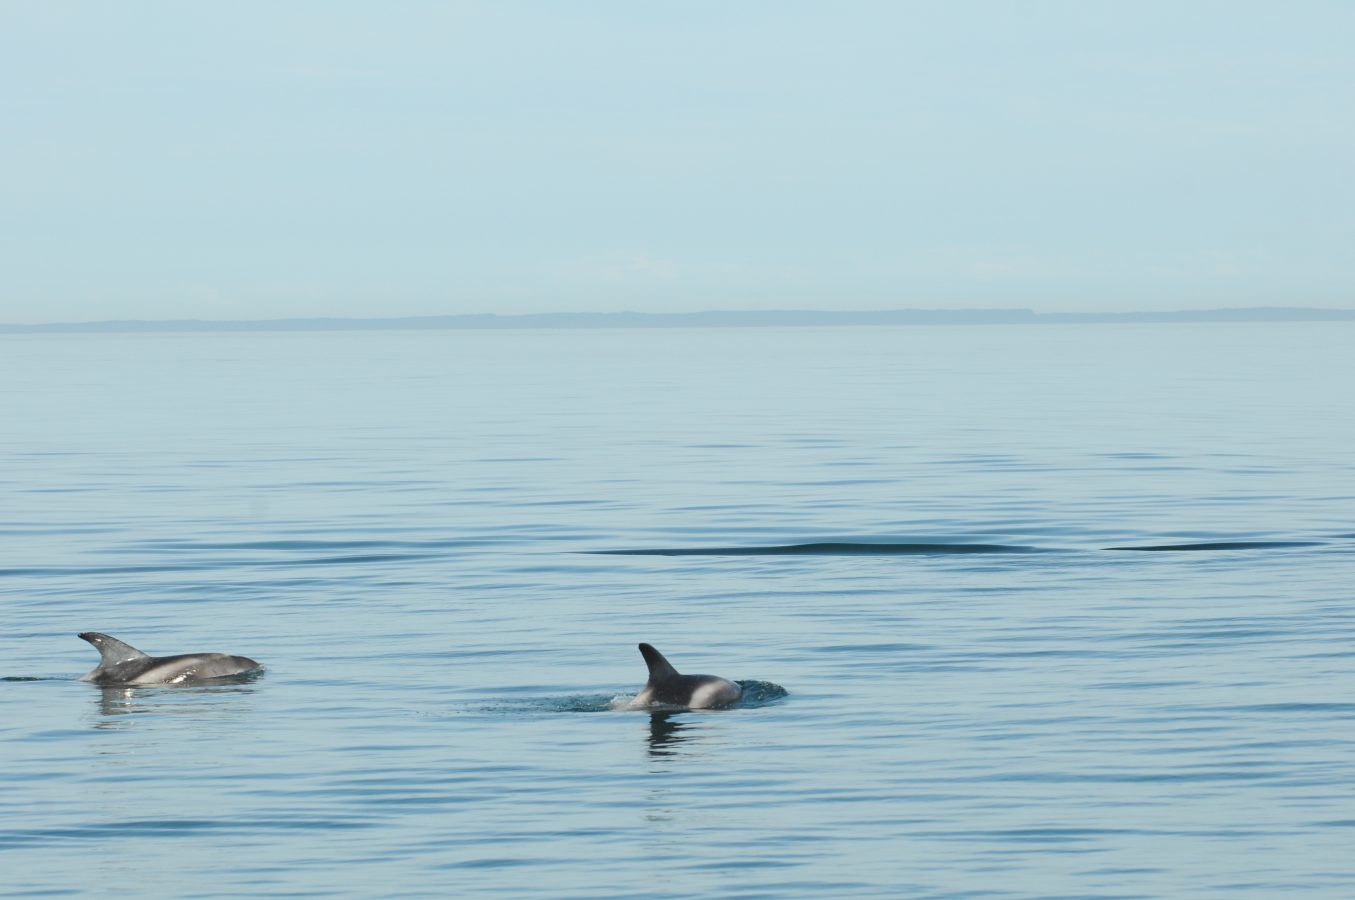 A rare sighting of white-beaked dolphins in the Bay of Fundy.